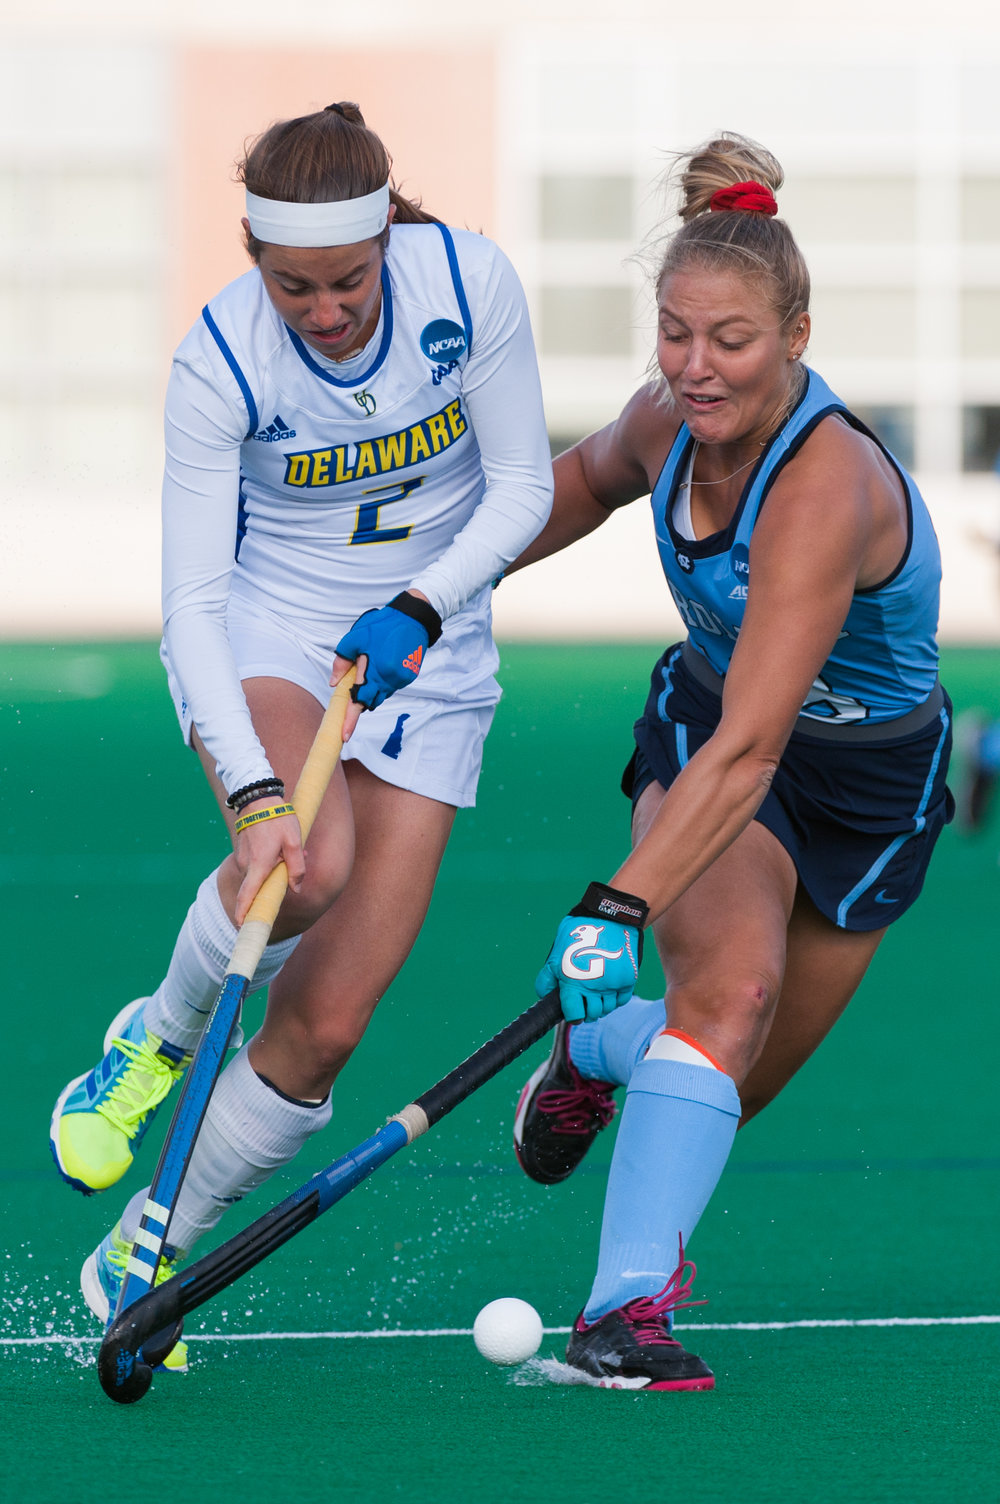 Delaware forward Taylor Lister (2) and North Carolina midfielder Ashley Hoffman (13) fight for the ball during the 2016 NCAA DI National Championship at the L.R. Hill Sports Complex in Norfolk, VA. Delaware defeated North Carolina 3-2.